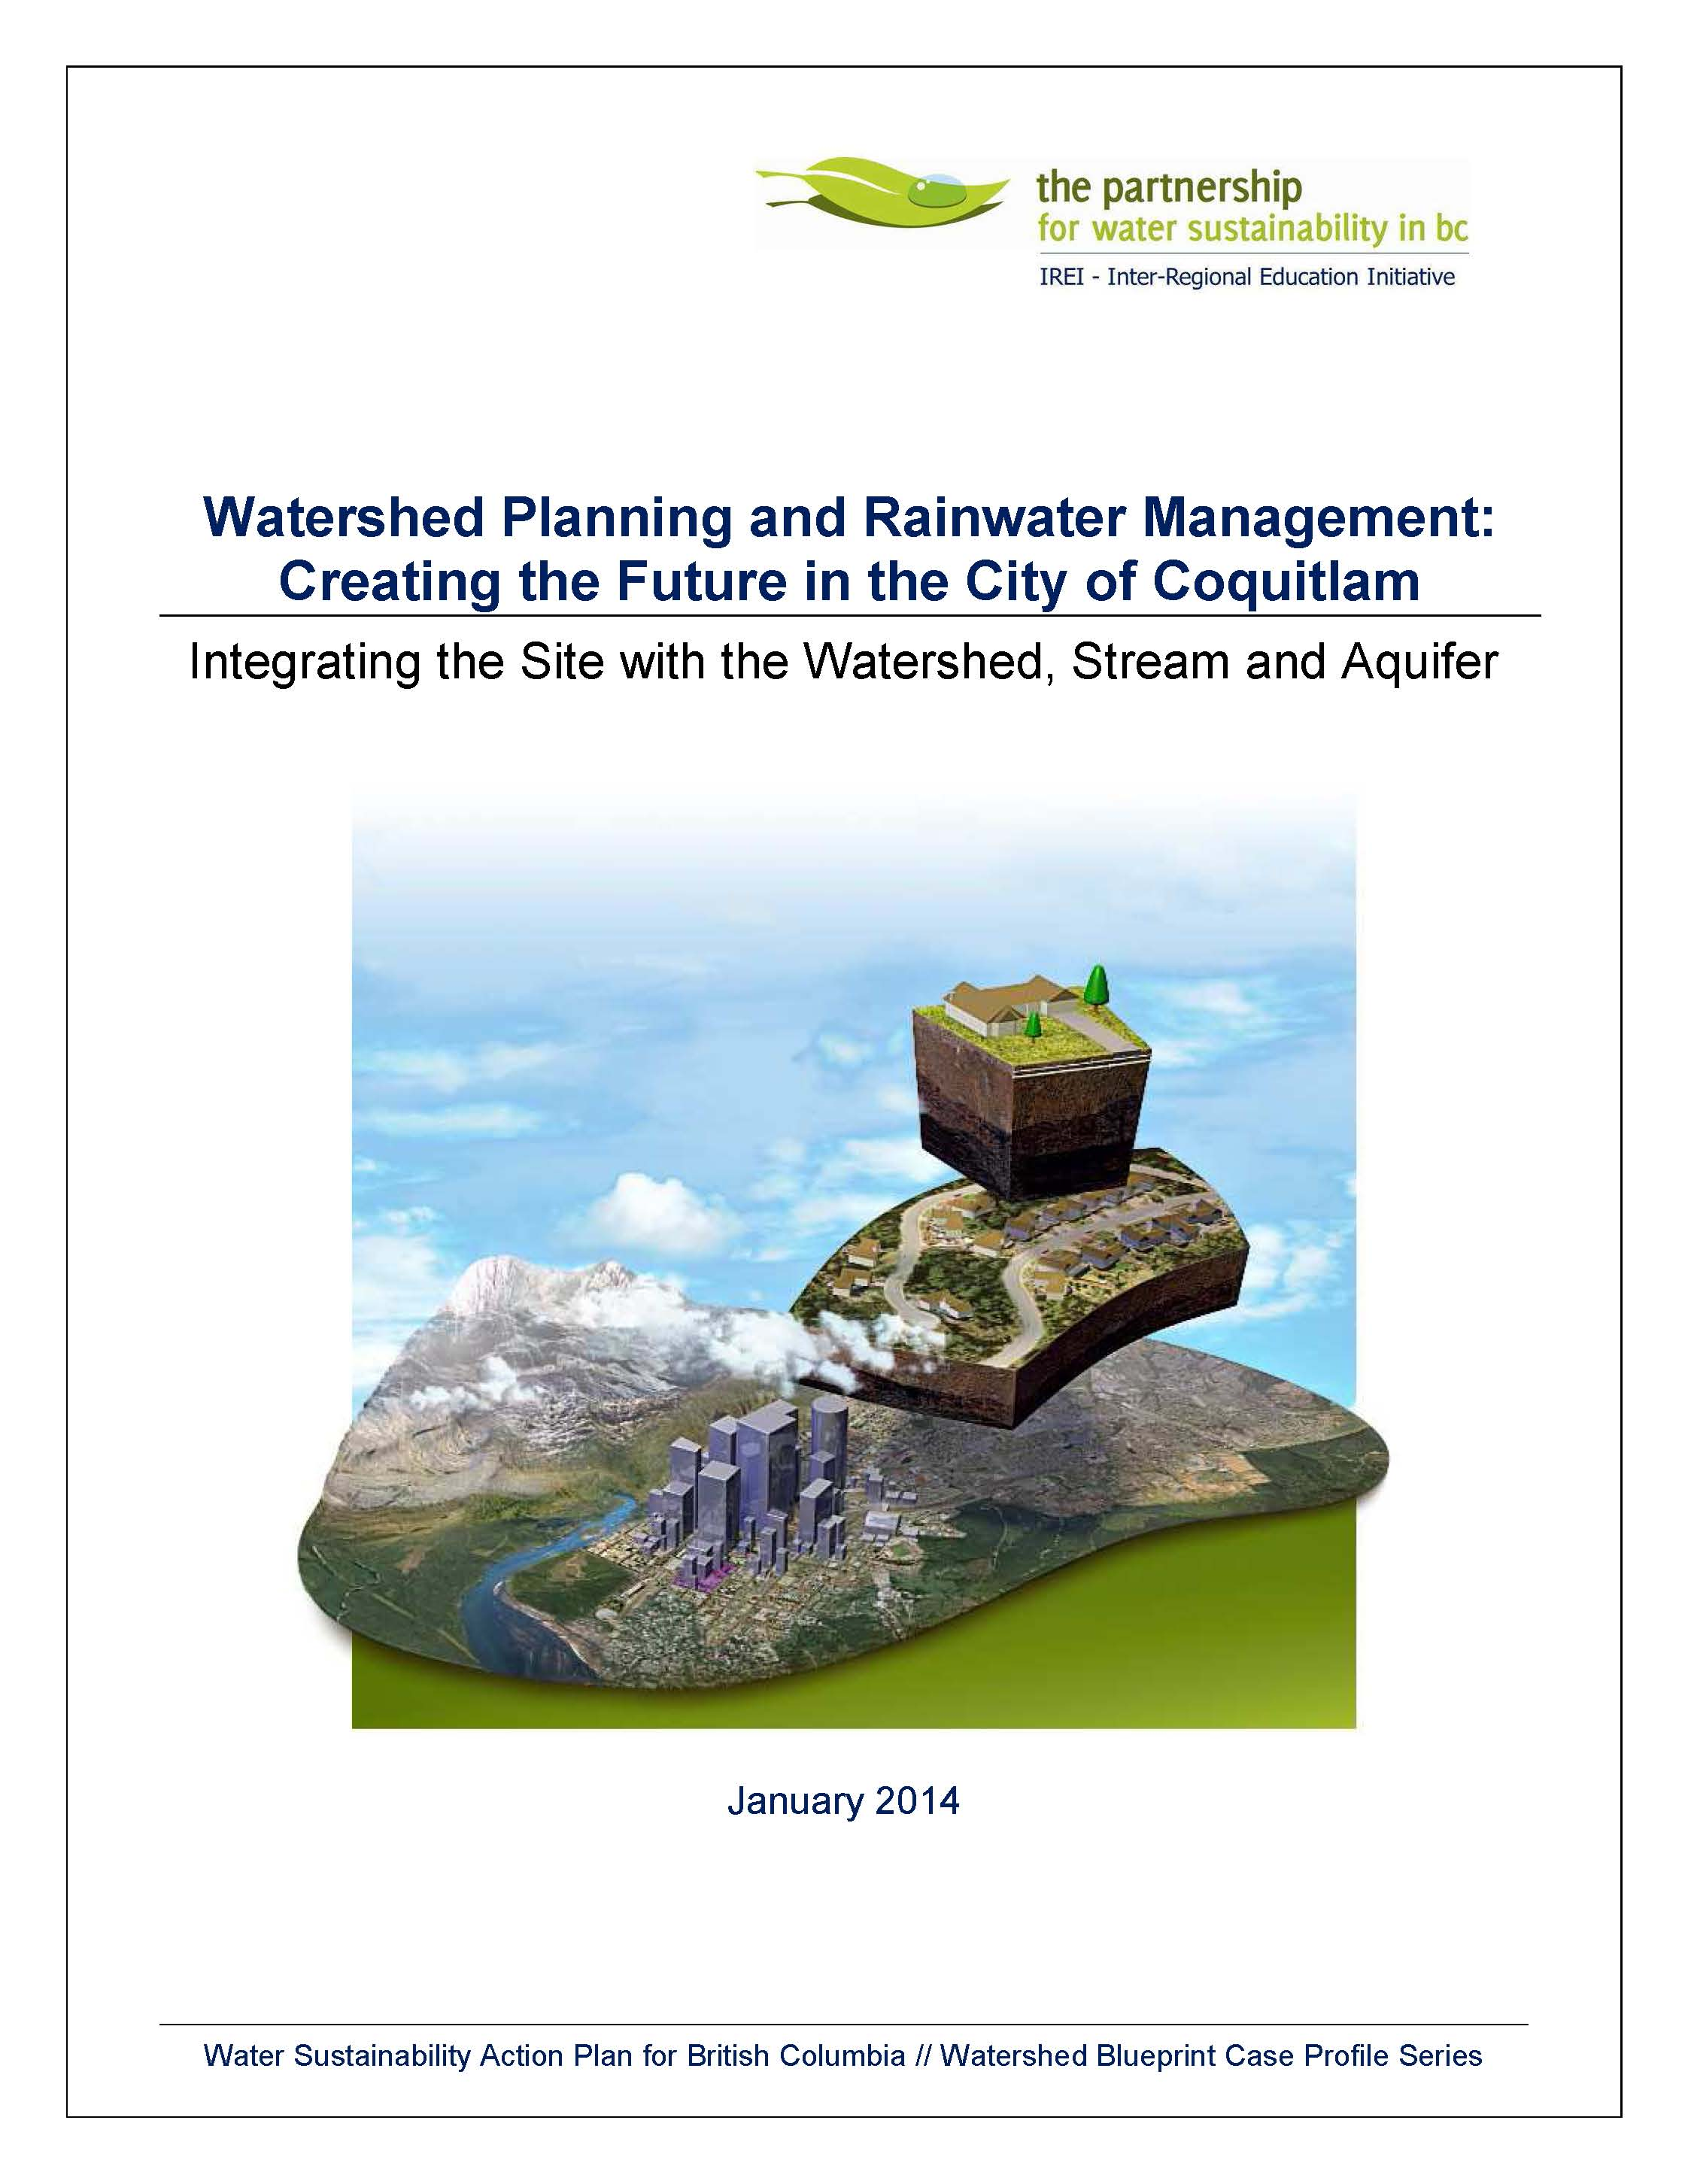 Coquitlam Watershed Planning and Rainwater Management Article (Jan 2014)_cover